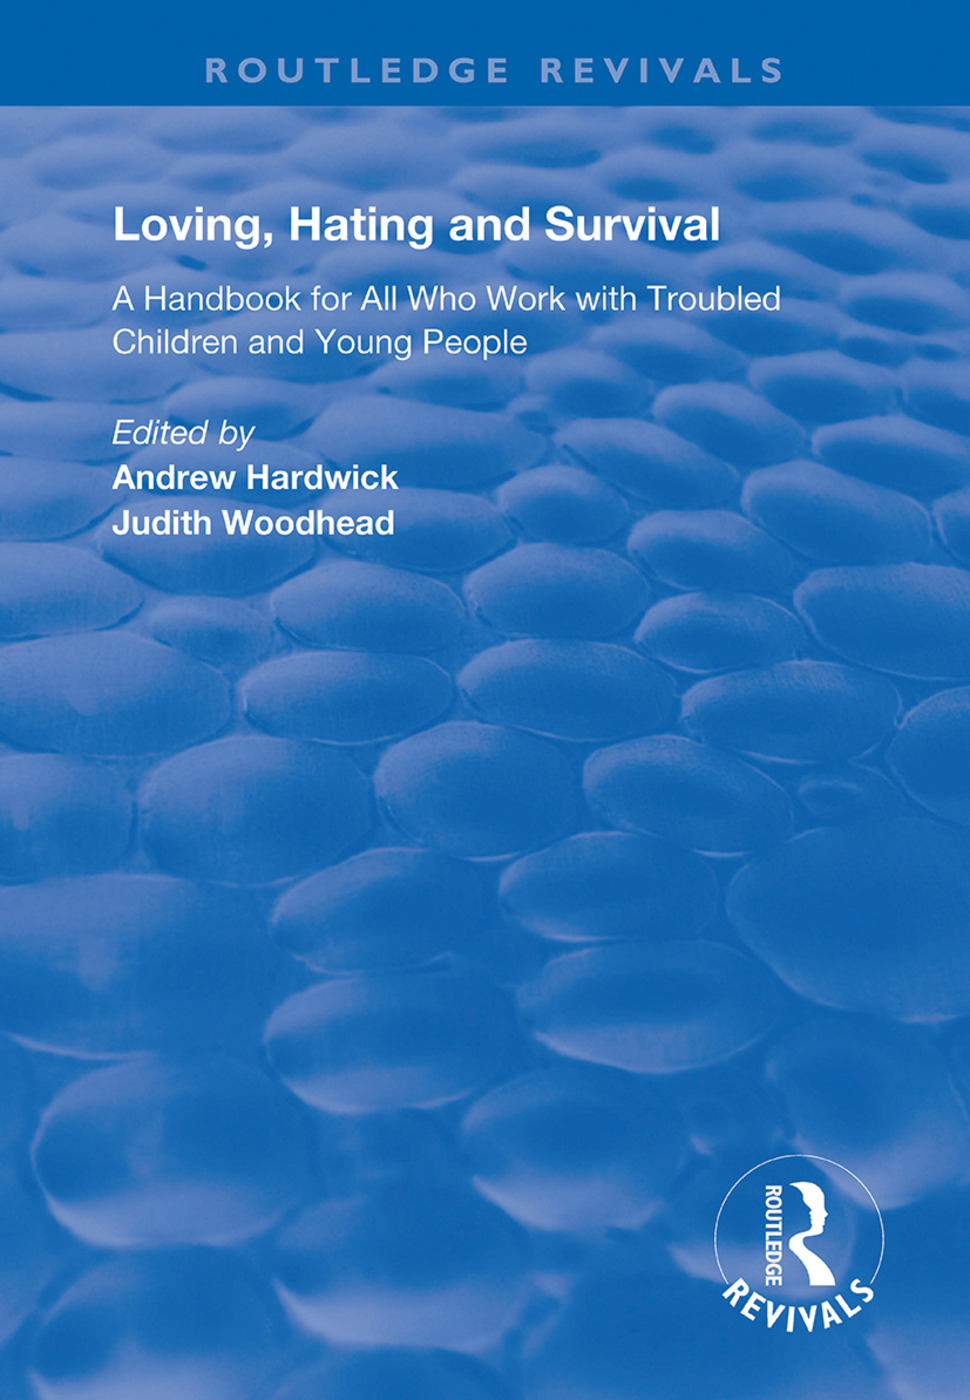 Loving, Hating and Survival: Handbook for All Who Work with Troubled Children and Young People book cover